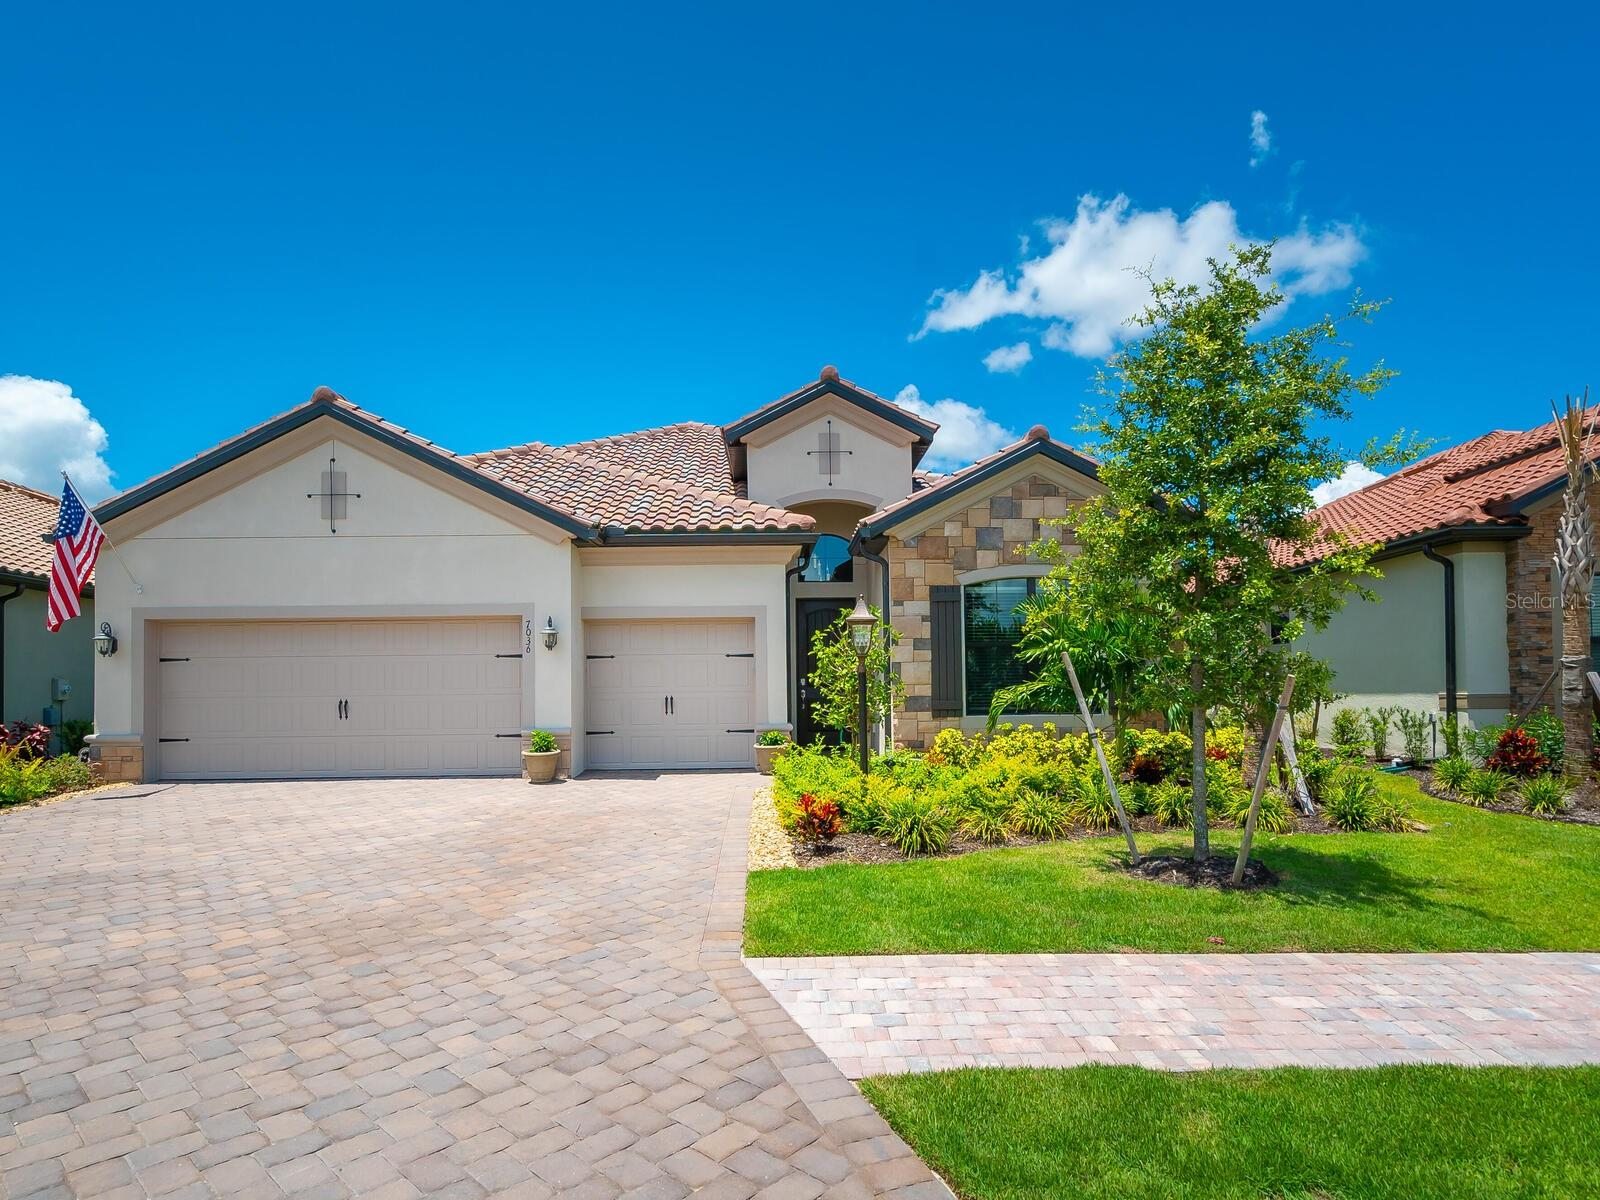 Primary photo of recently sold MLS# A4508398